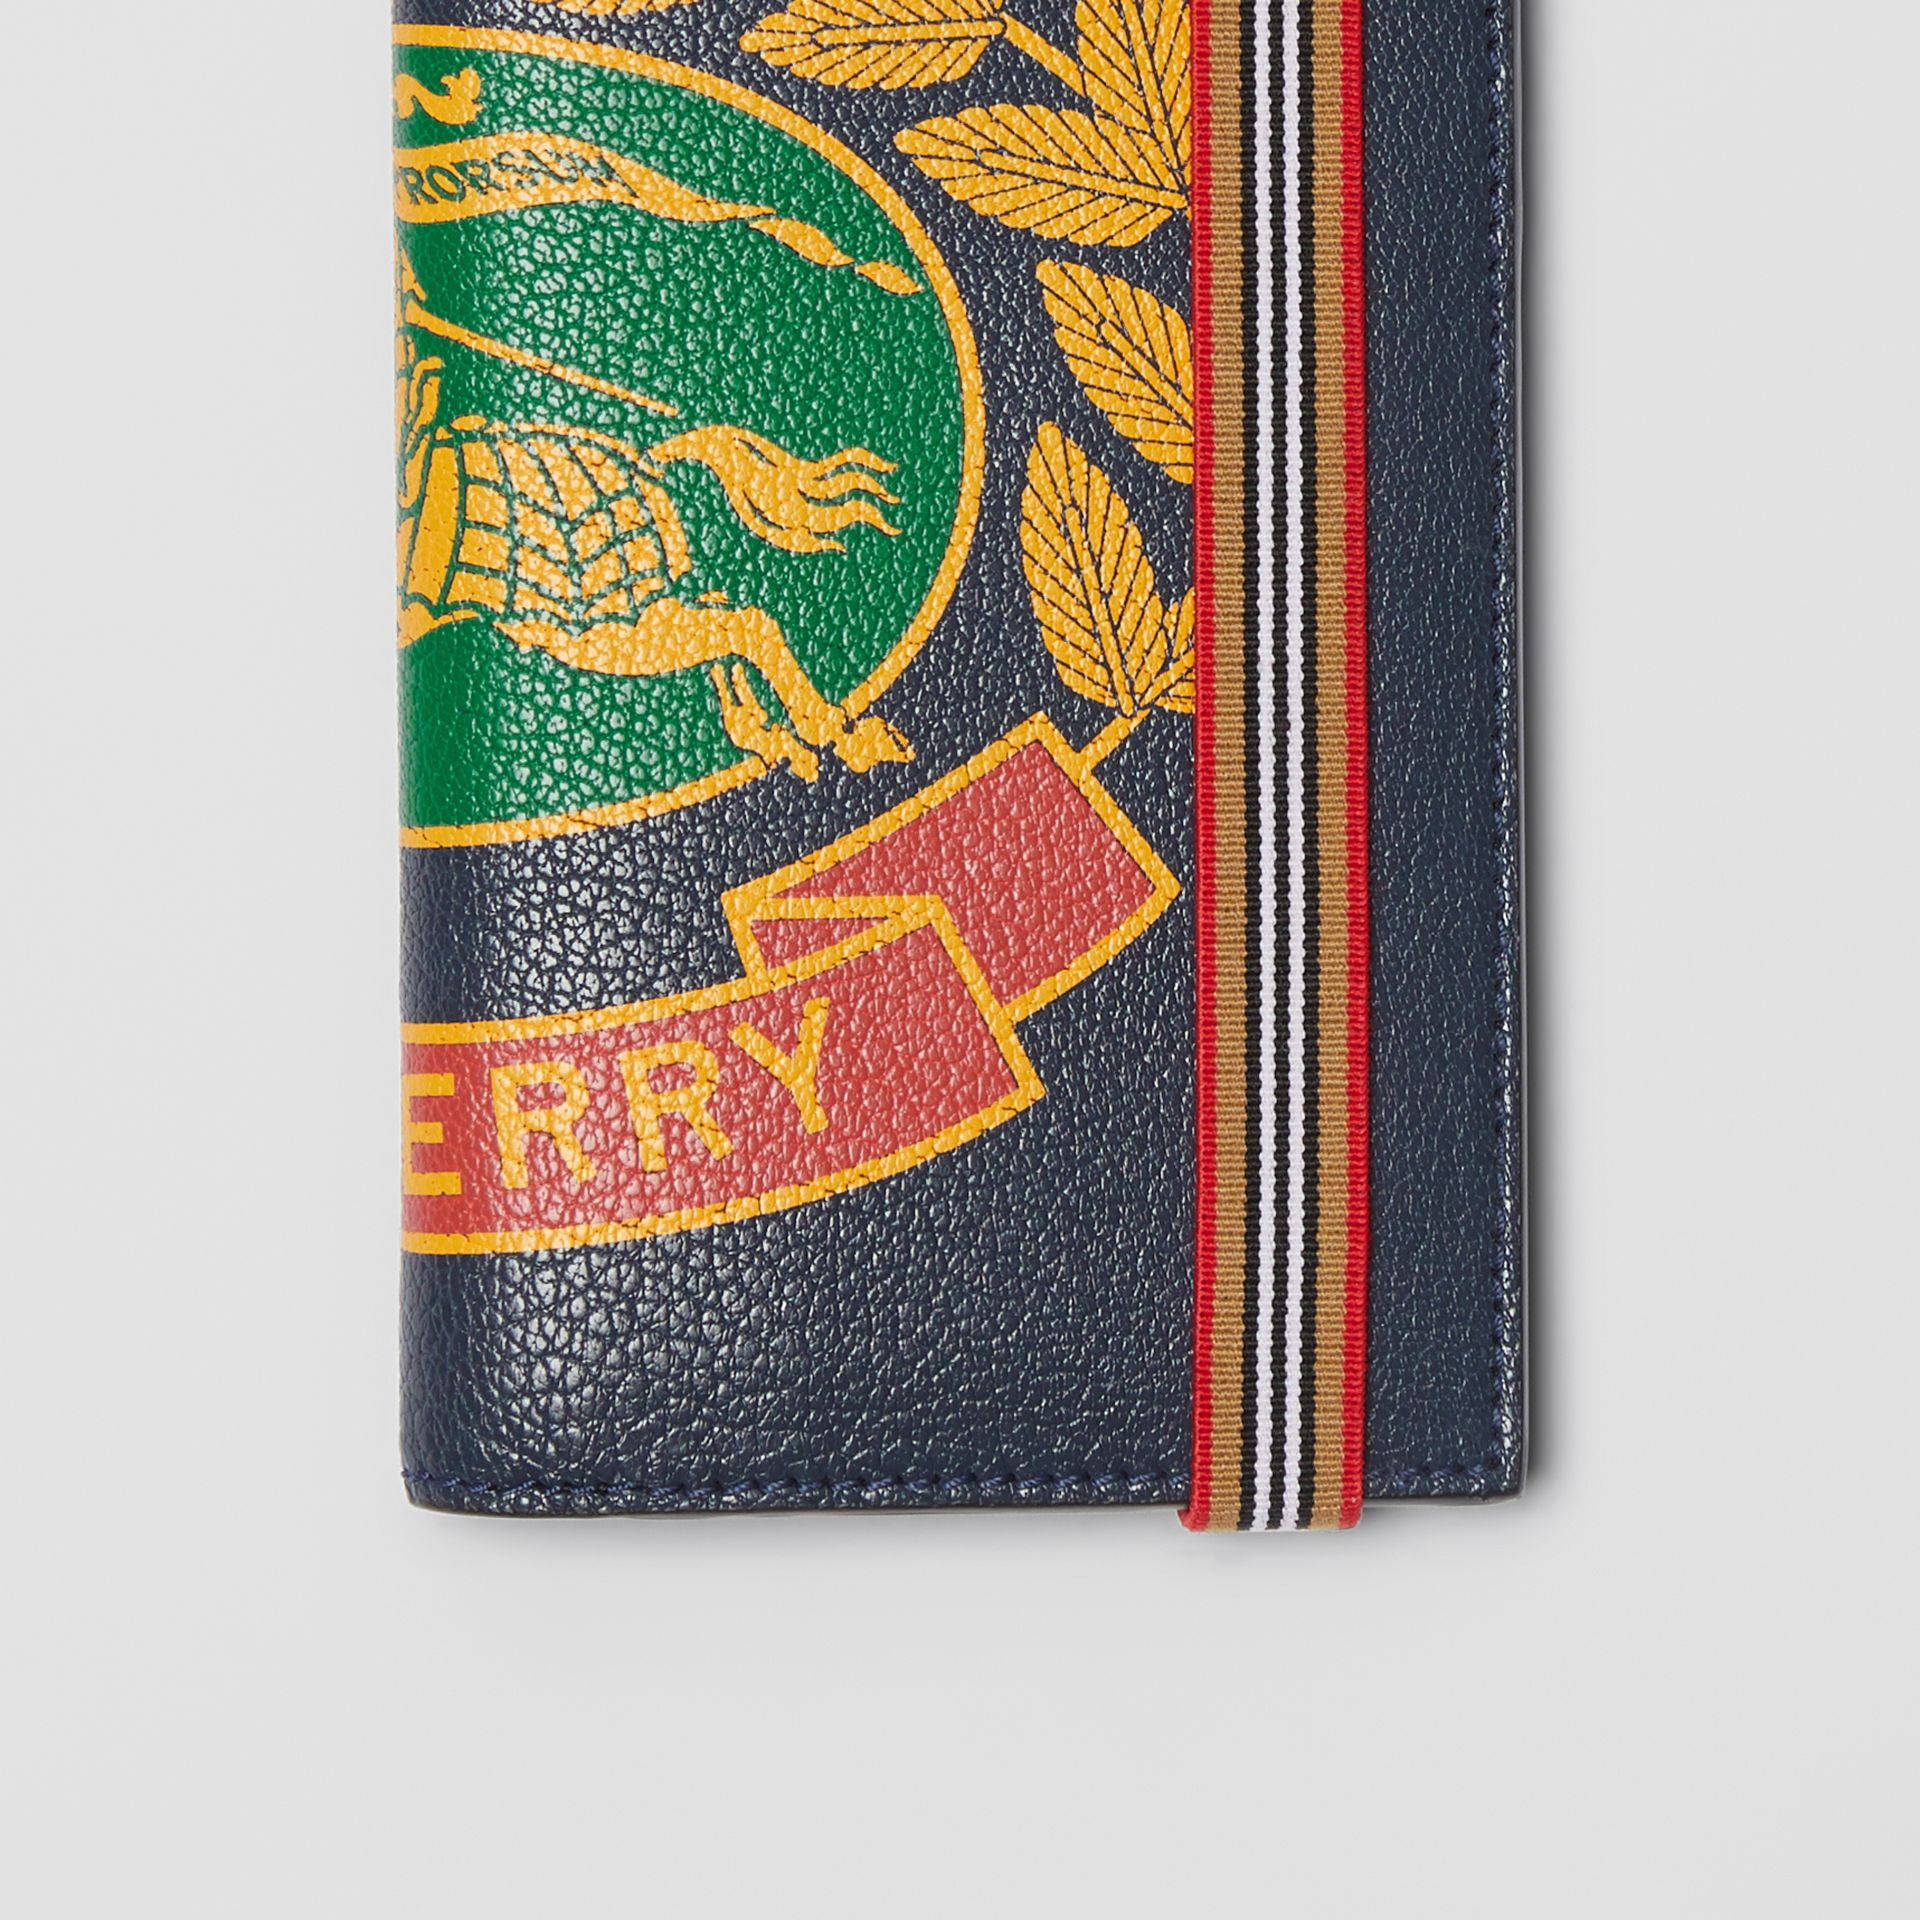 Crest Print Leather Continental Wallet in Storm Blue - Men | Burberry - gallery image 1